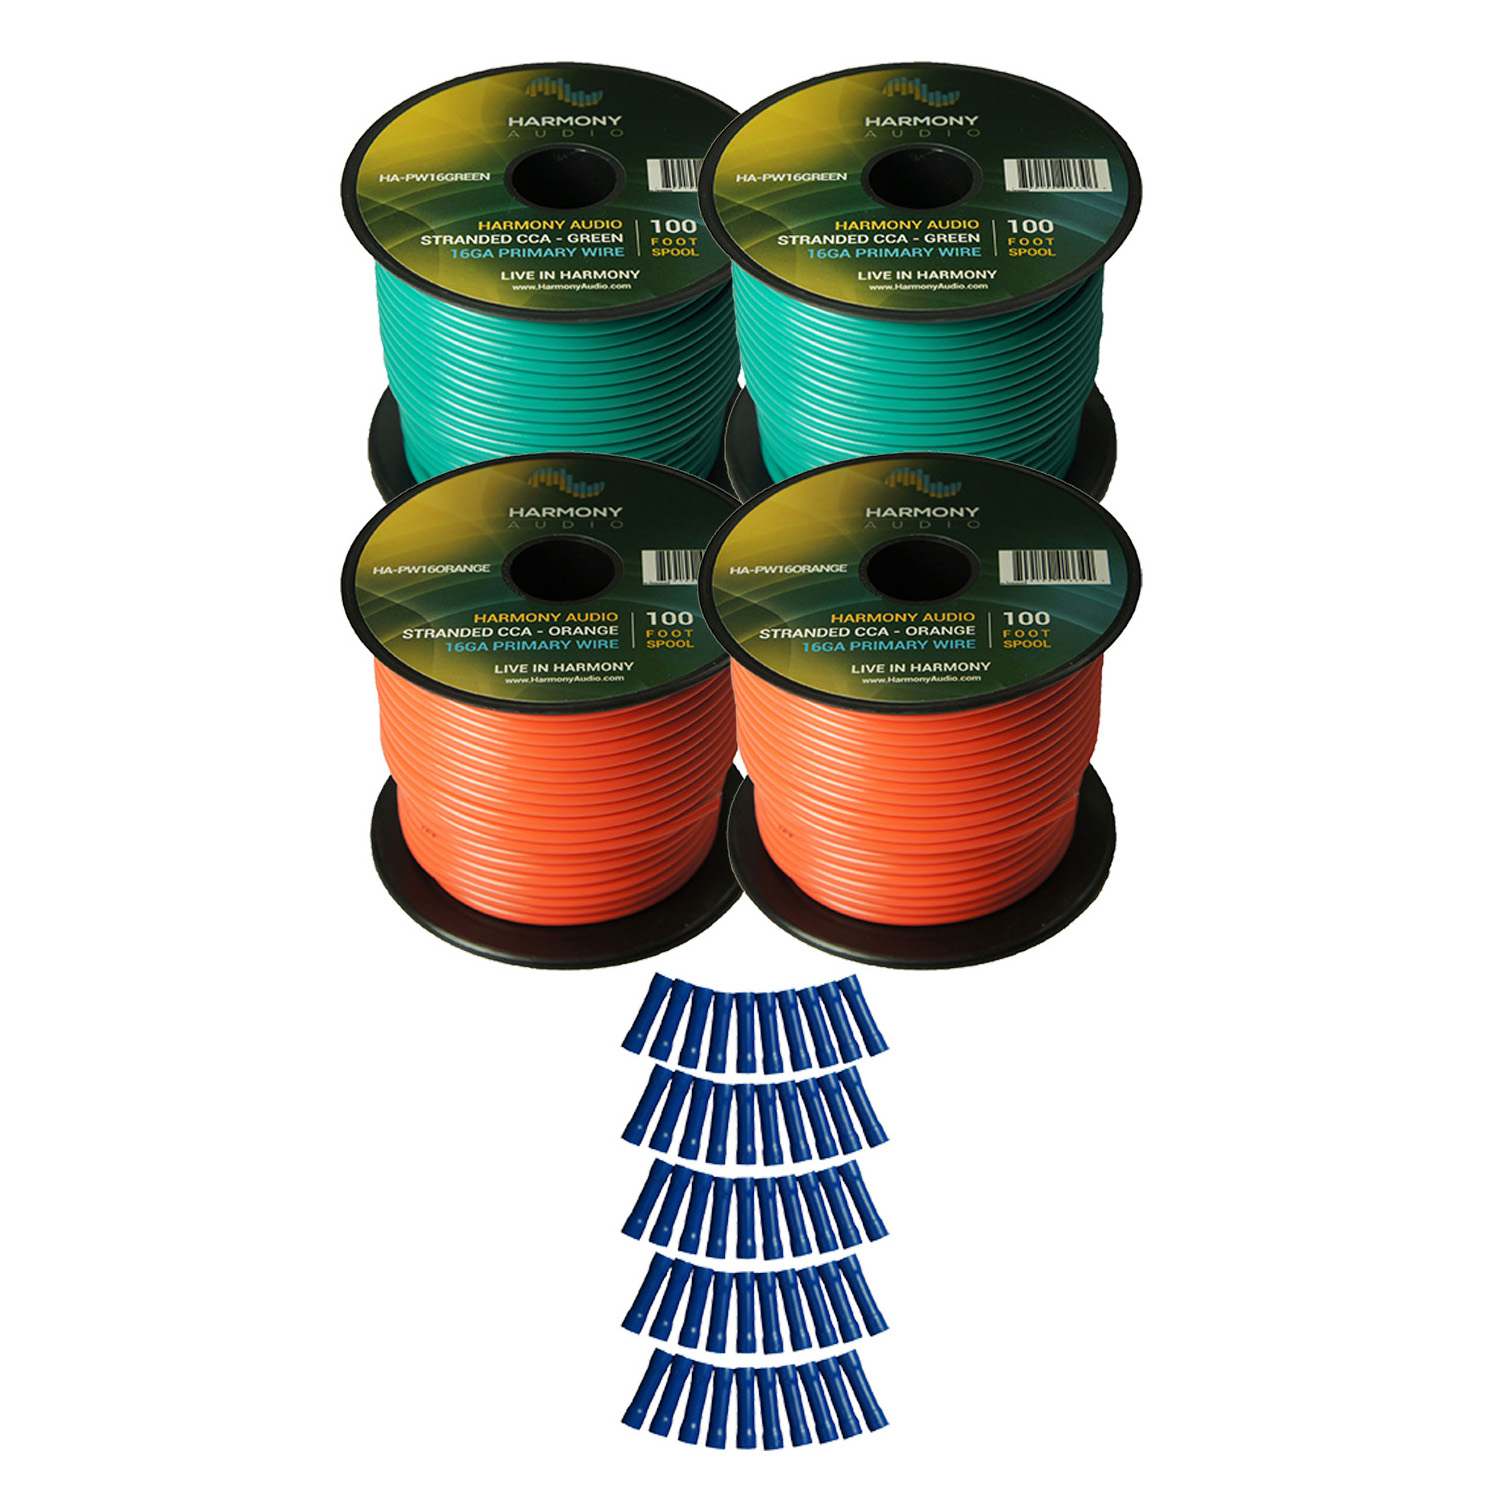 Harmony Audio Primary Single Conductor 16 Gauge Power or Ground Wire - 4 Rolls - 400 Feet - Green & Orange for Car Audio / Trailer / Model Train / Remote